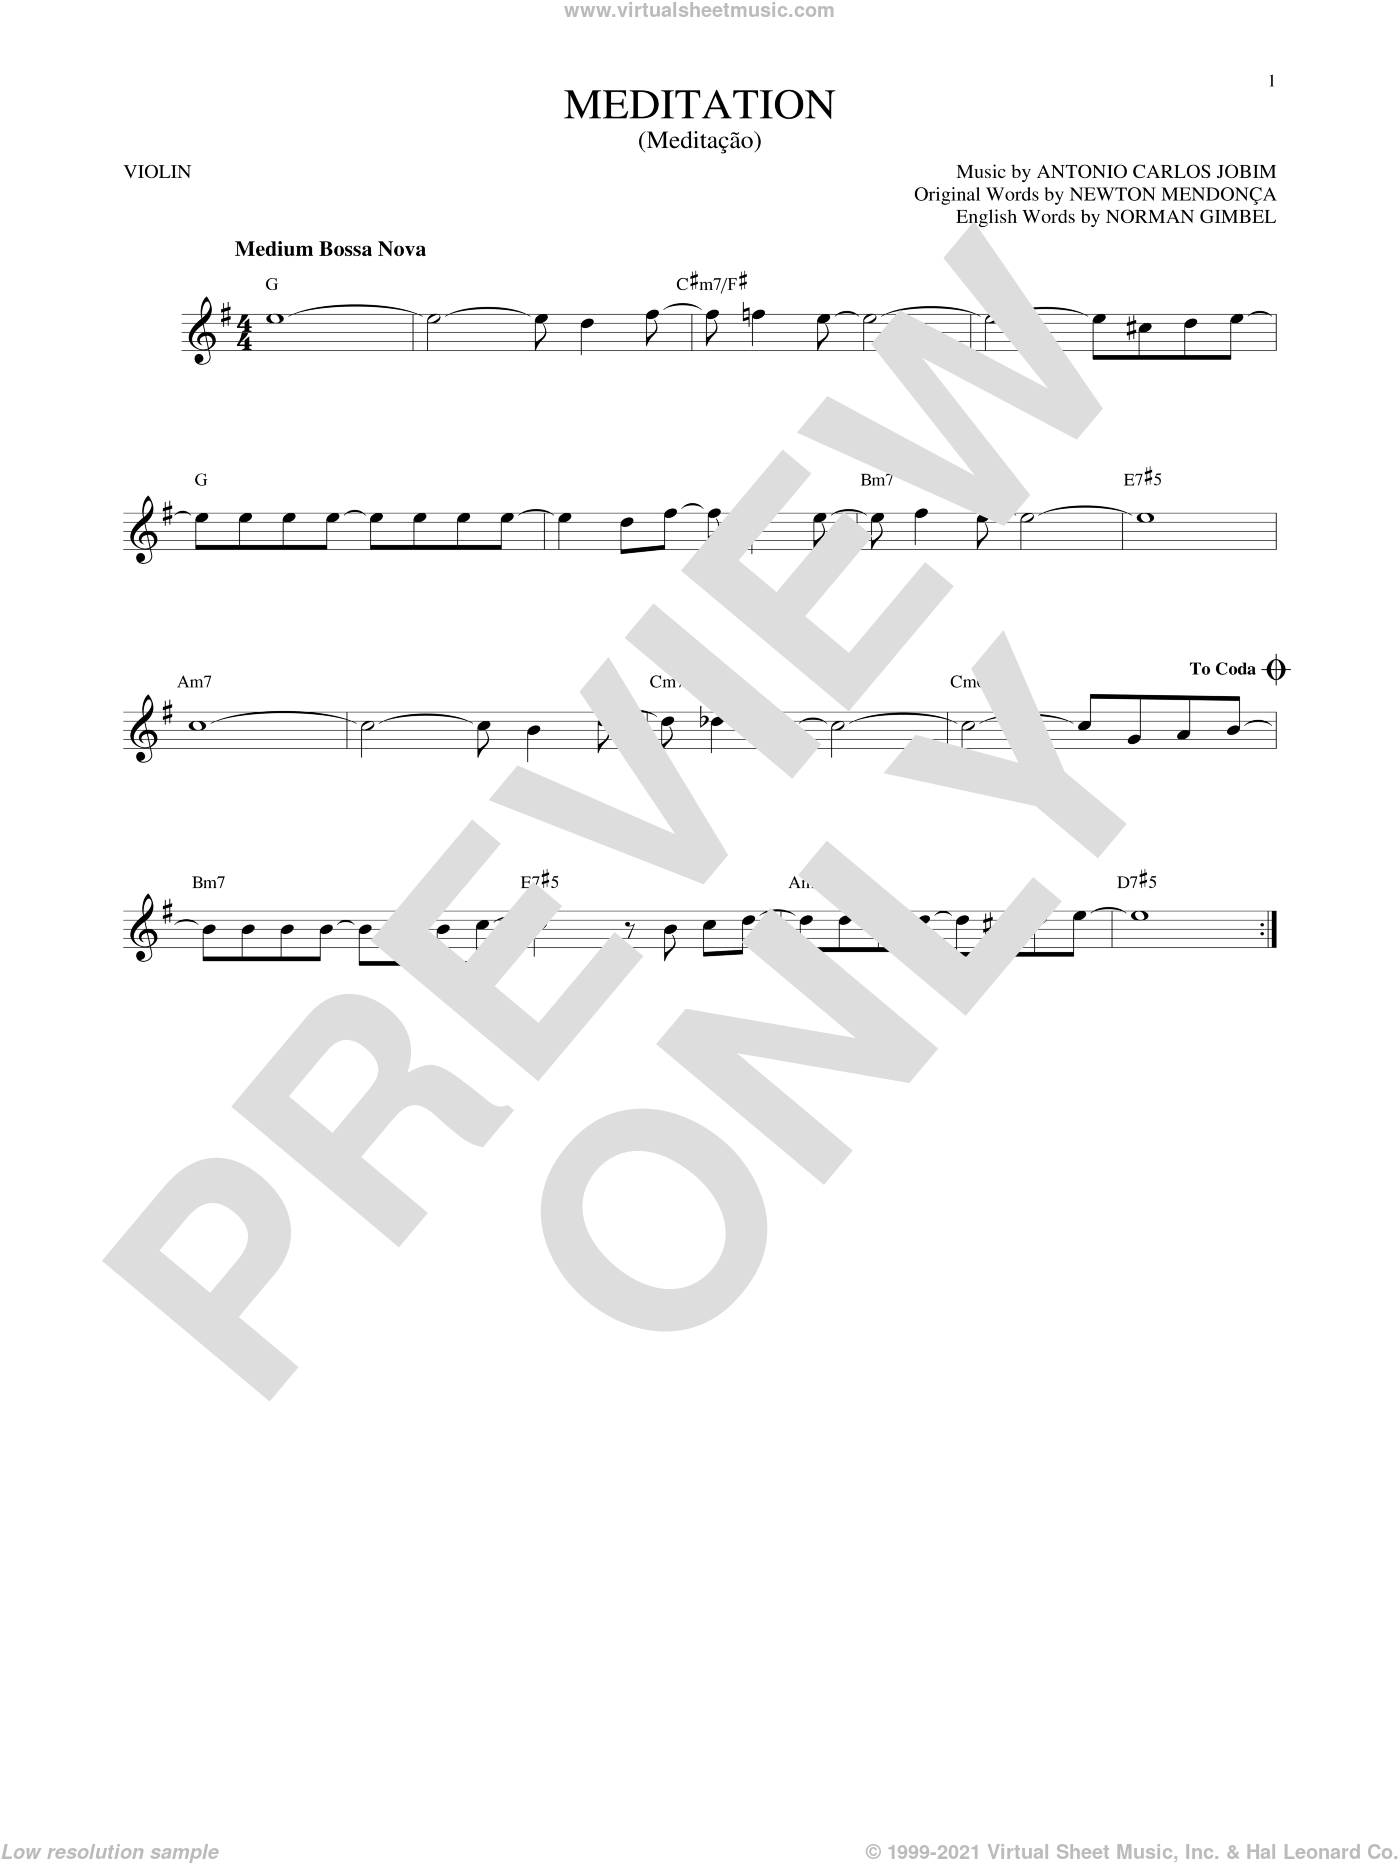 Meditation (Meditacao) sheet music for violin solo by Norman Gimbel, Antonio Carlos Jobim, Newton MendonA�A�a and Newton Mendonca. Score Image Preview.